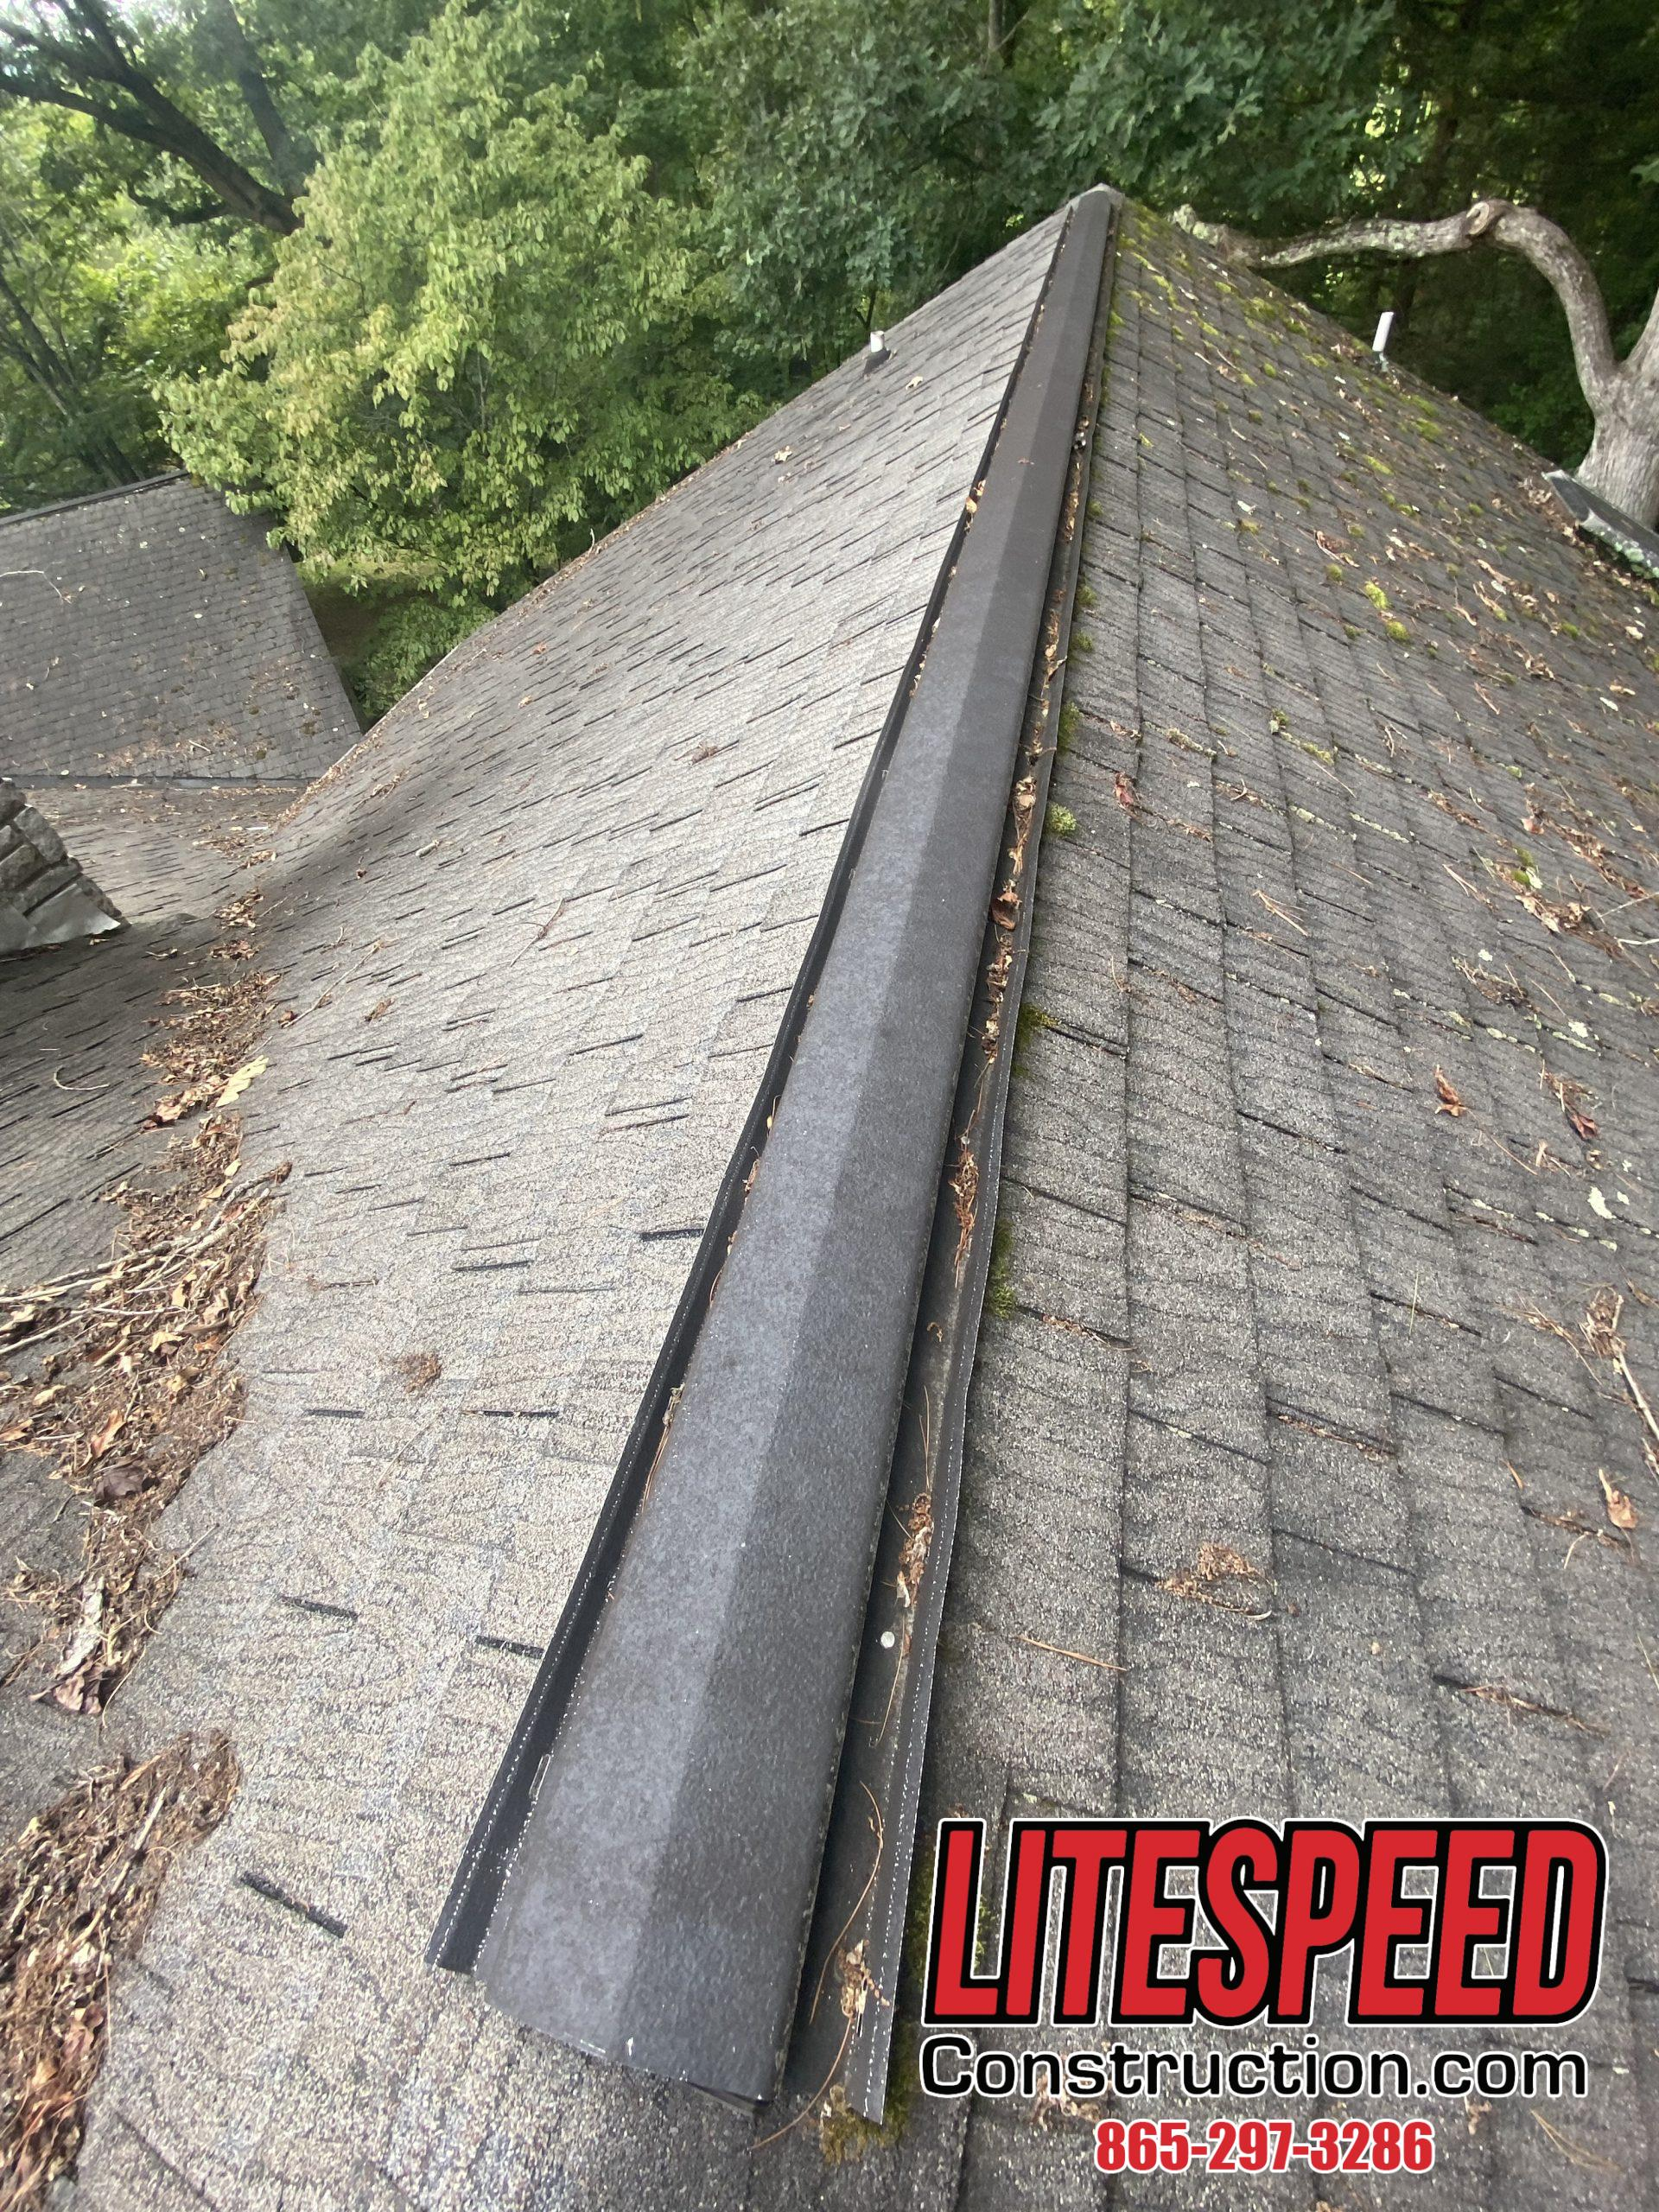 THis is a picture of an old black metal ridge vent